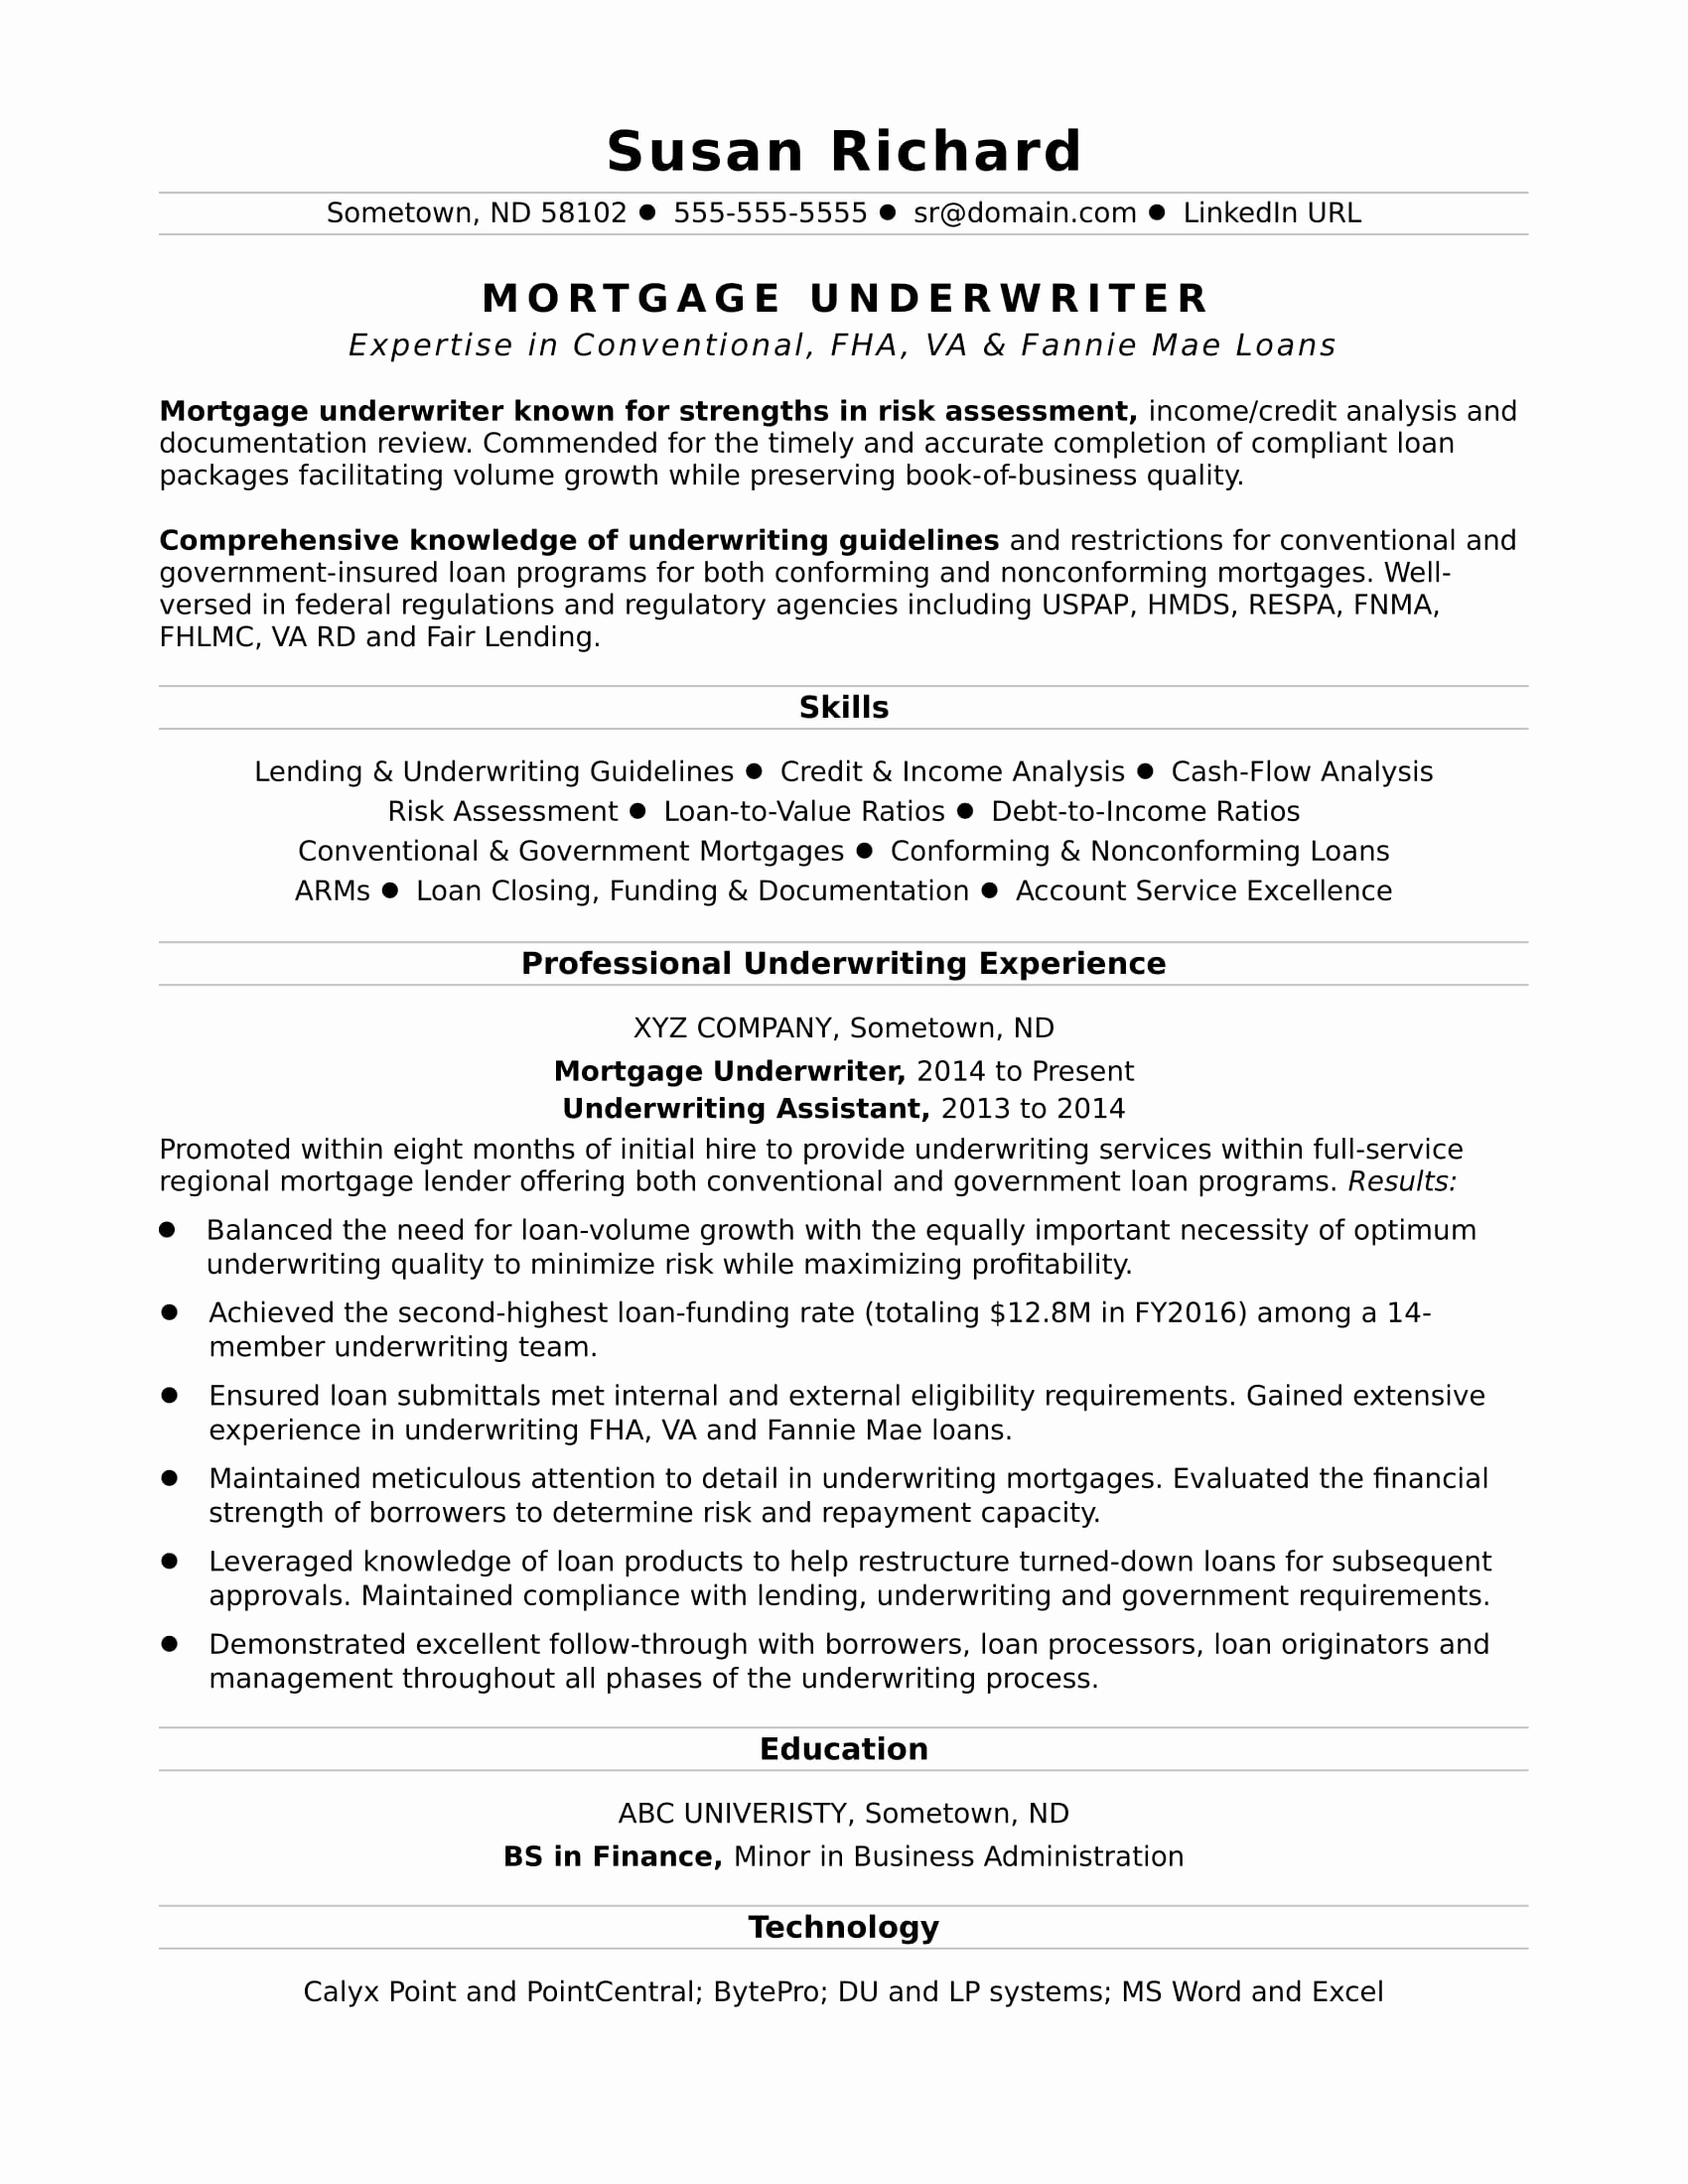 Rfp Cover Letter Template - Underwriter Cover Letter Lovely Detailed Resume Template Luxury